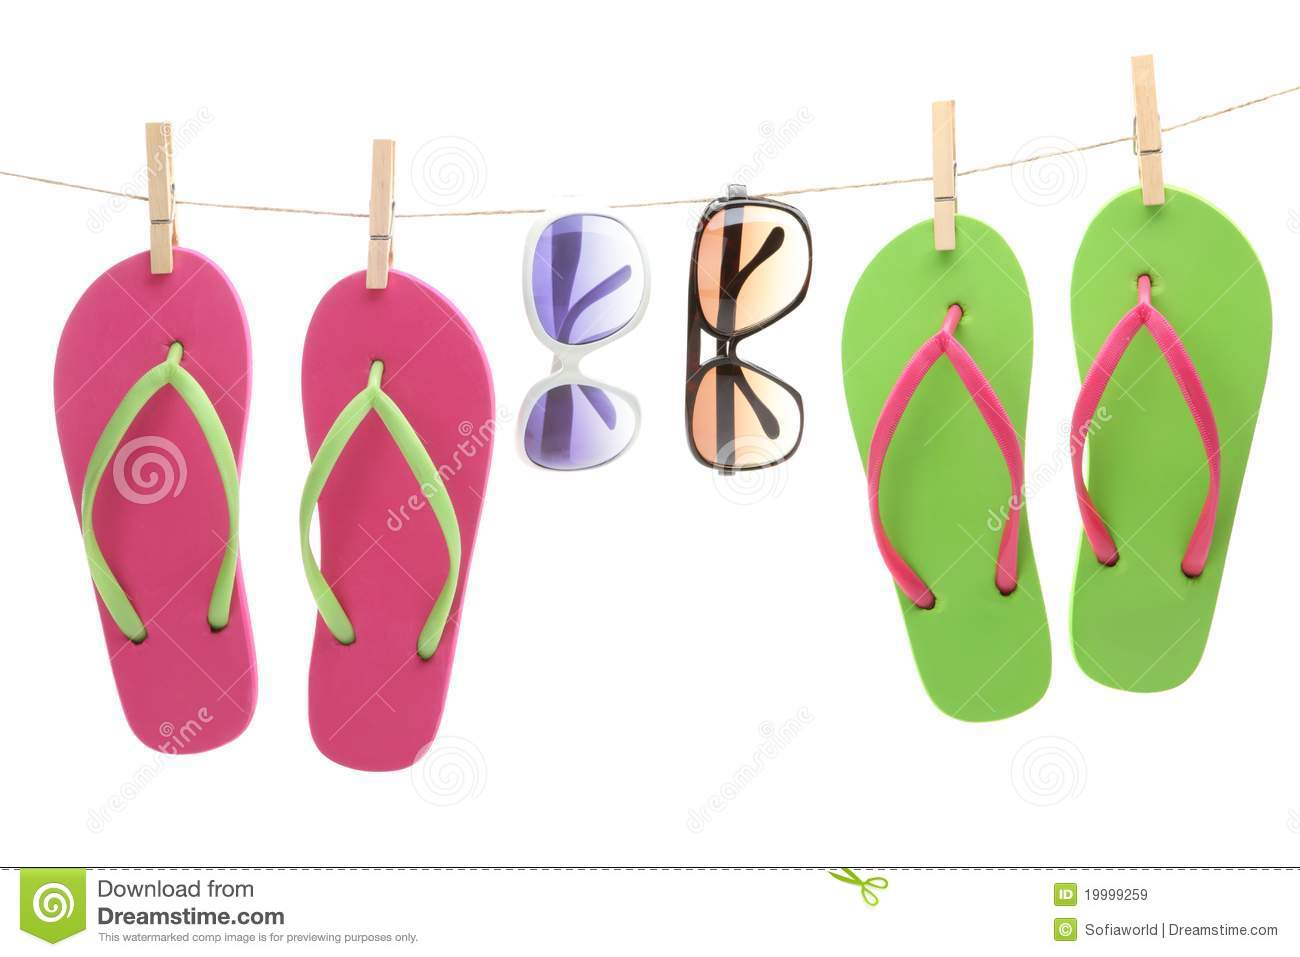 Flipflop Sandles And Sunglasses Hanging By Clips Royalty Free Stock Images